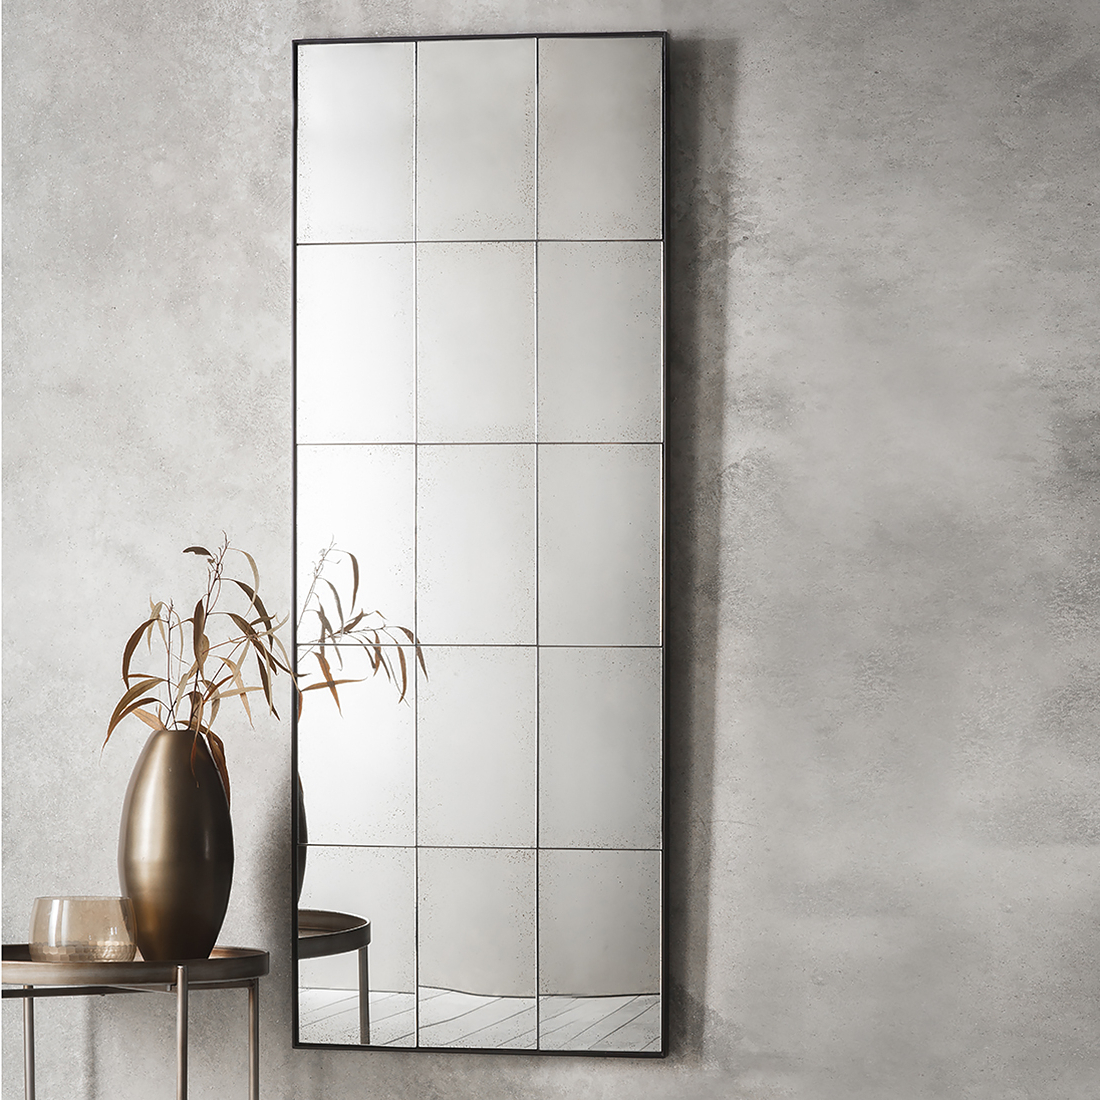 Gorgeous Long Glass Wall Mirror Bevelled Silver Mirrored Decor Large Within Latest Large Wall Mirrors For Bedroom (View 14 of 20)